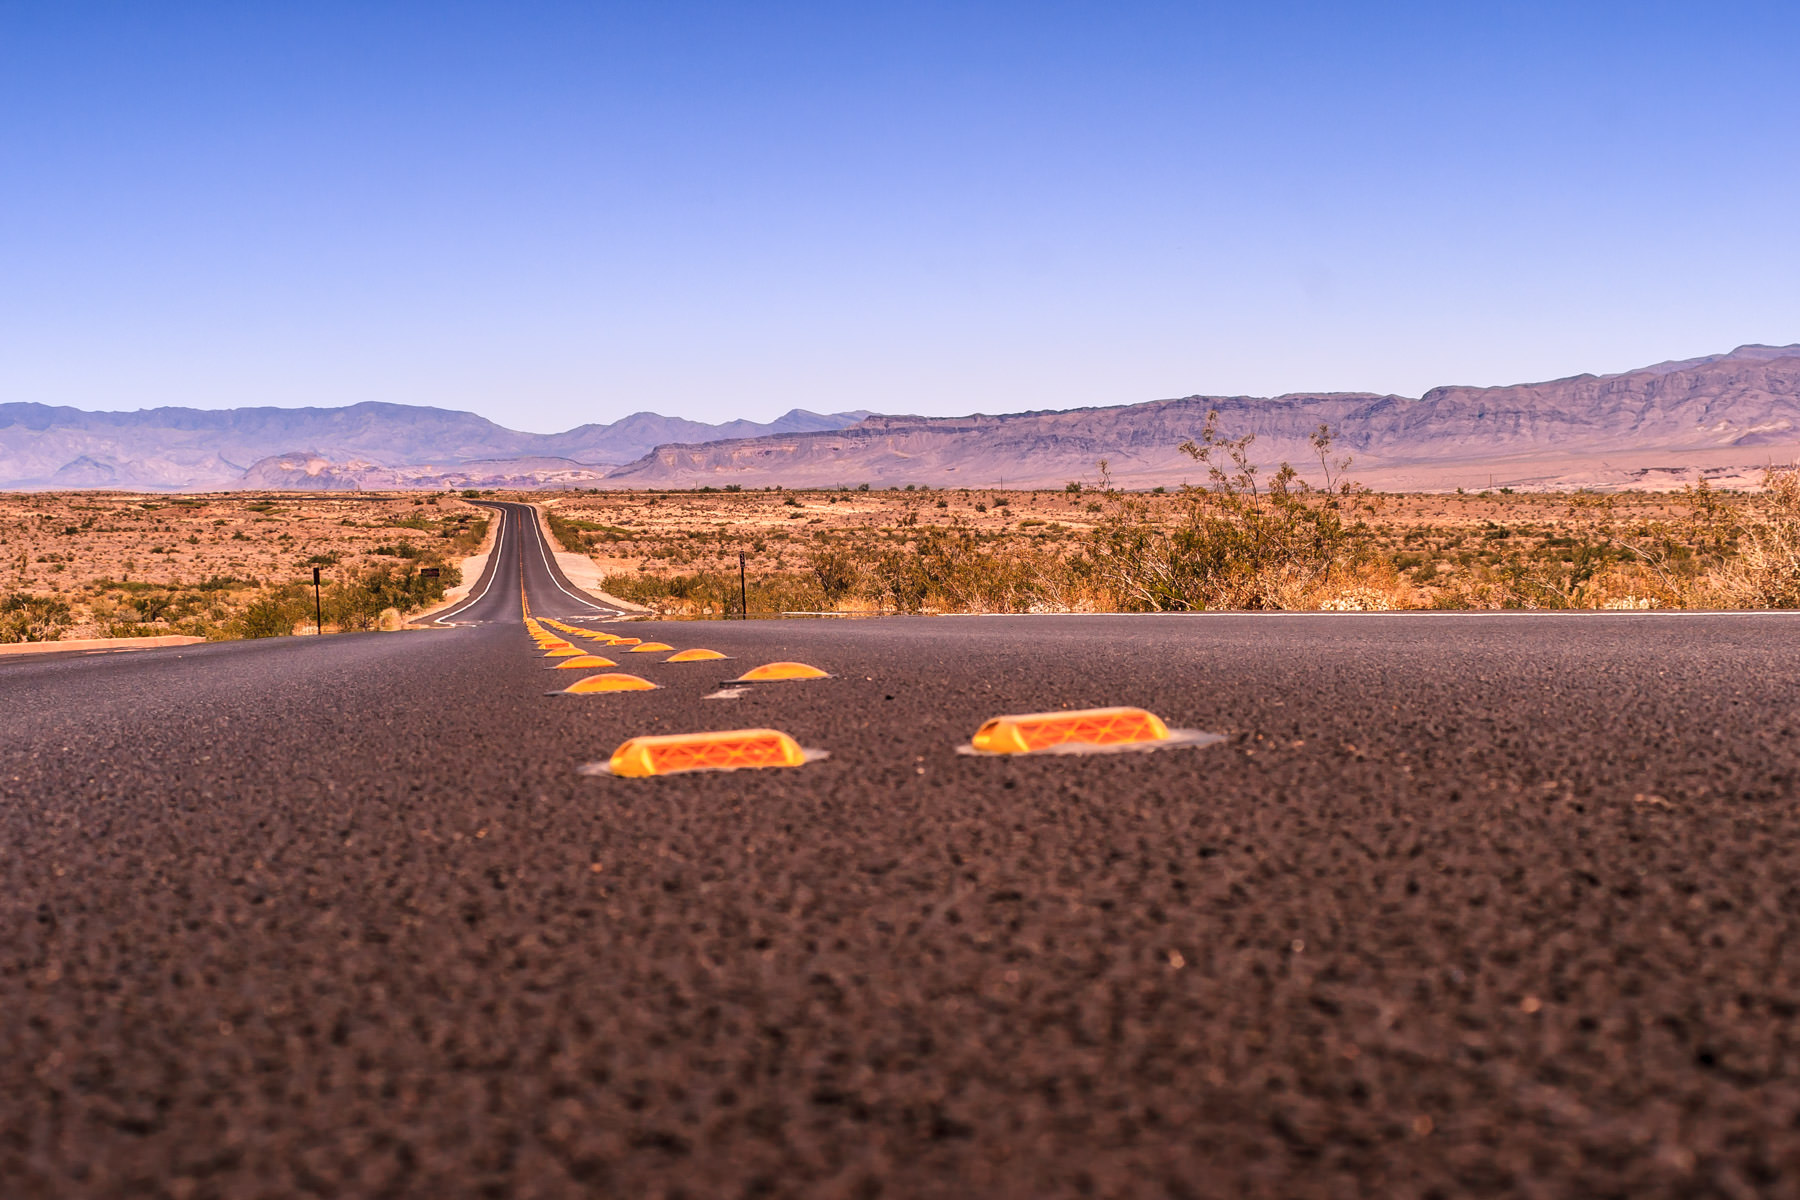 A lonesome road leading to the desert mountains somewhere in Nevada east of Las Vegas near the Arizona border.